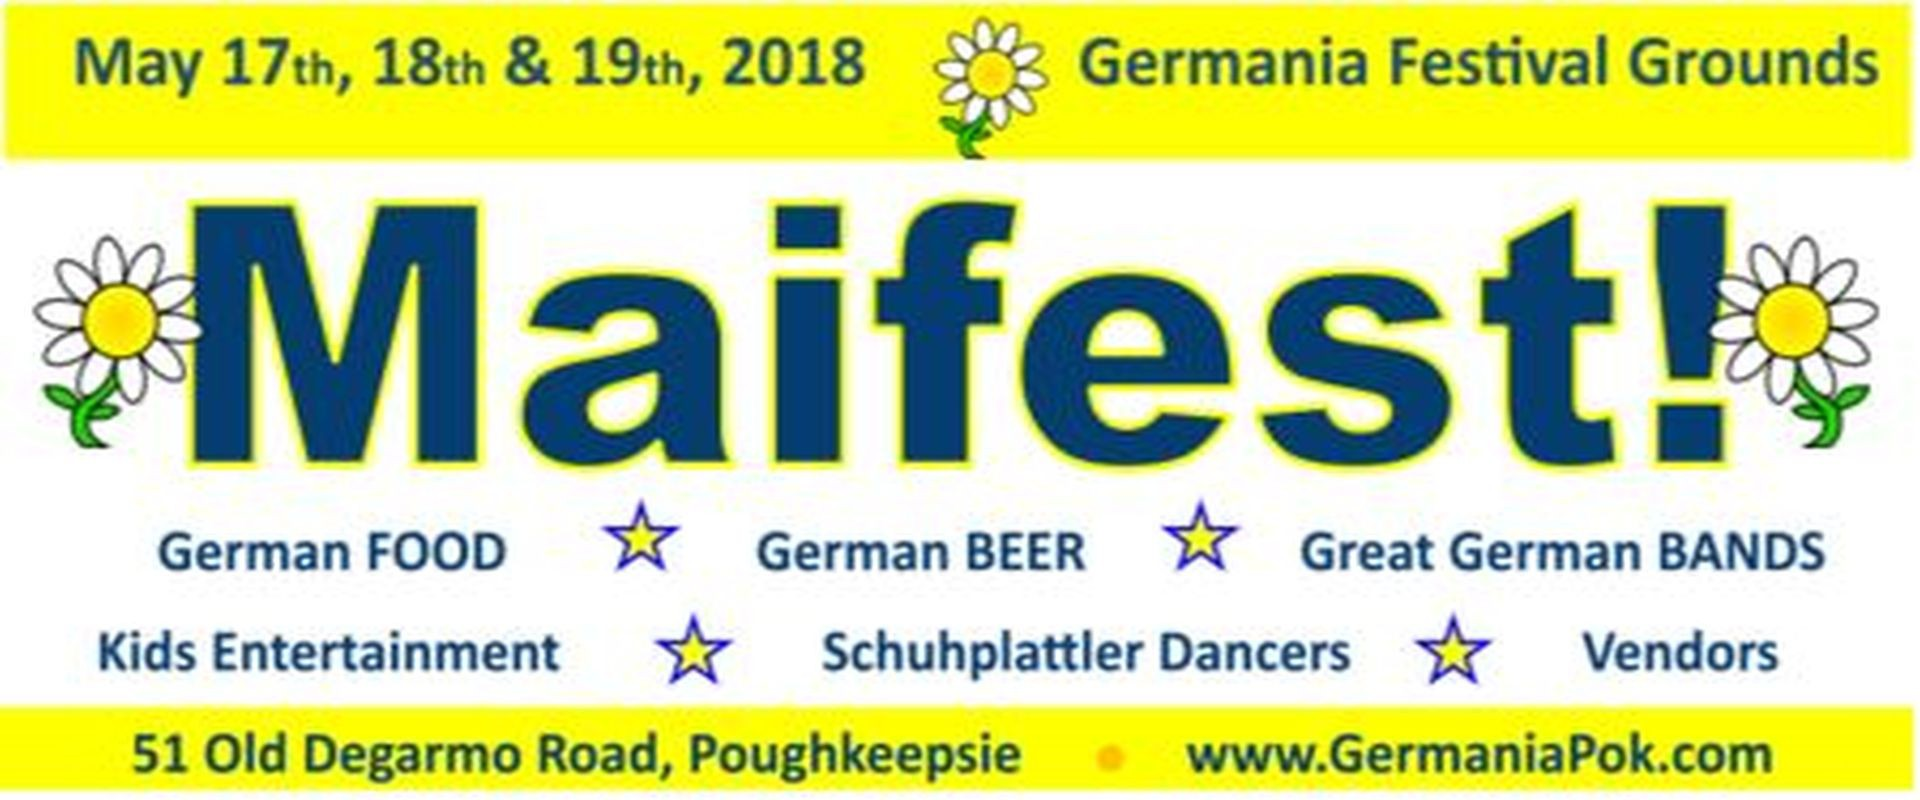 17 May 2019: Maifest 2019! - Fun, Festive, Authentic MAIFEST